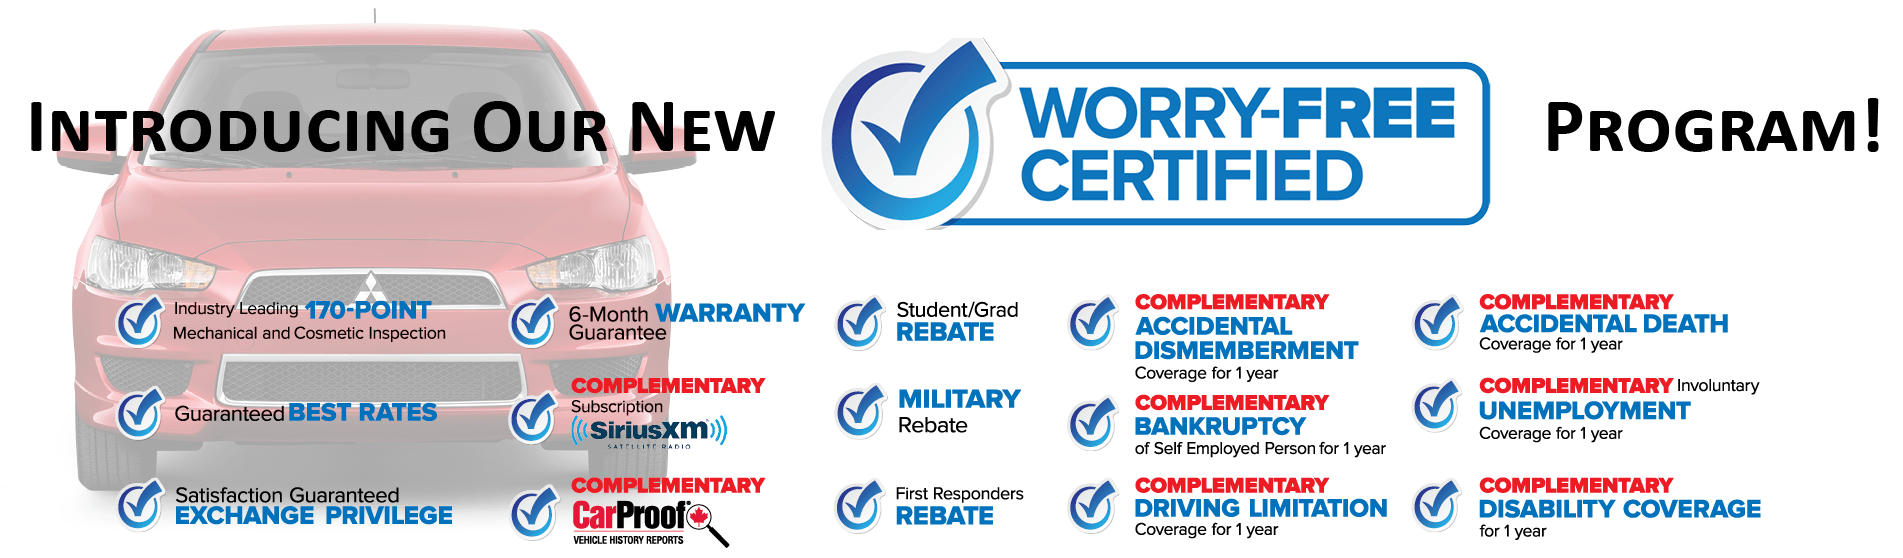 worry free certified program